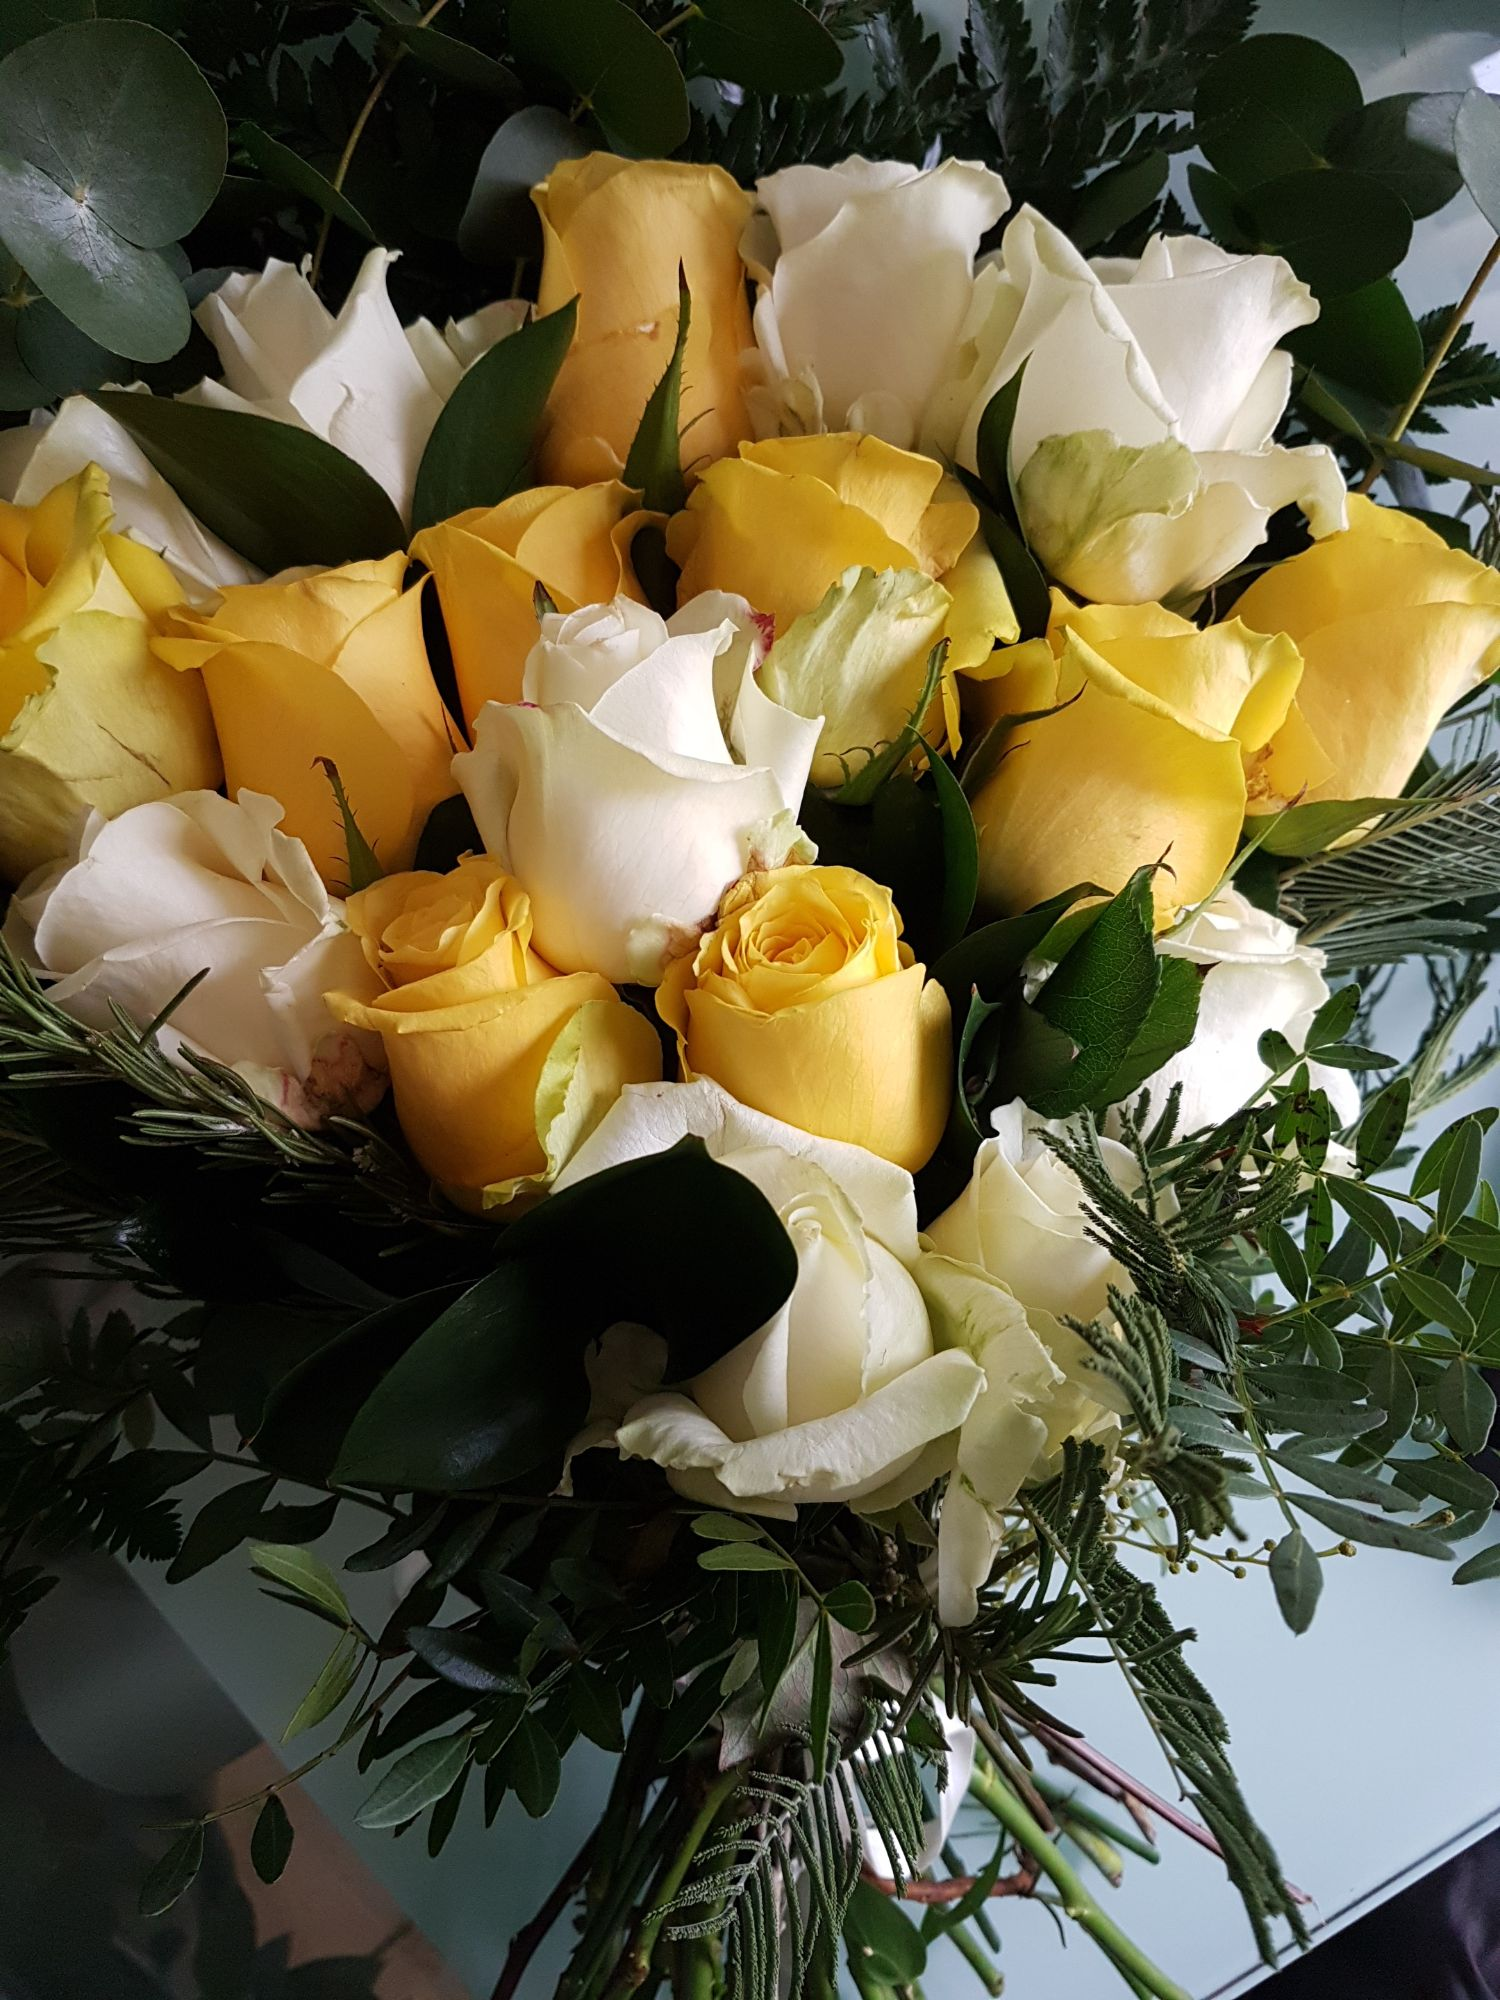 Roses, and Calla Lily